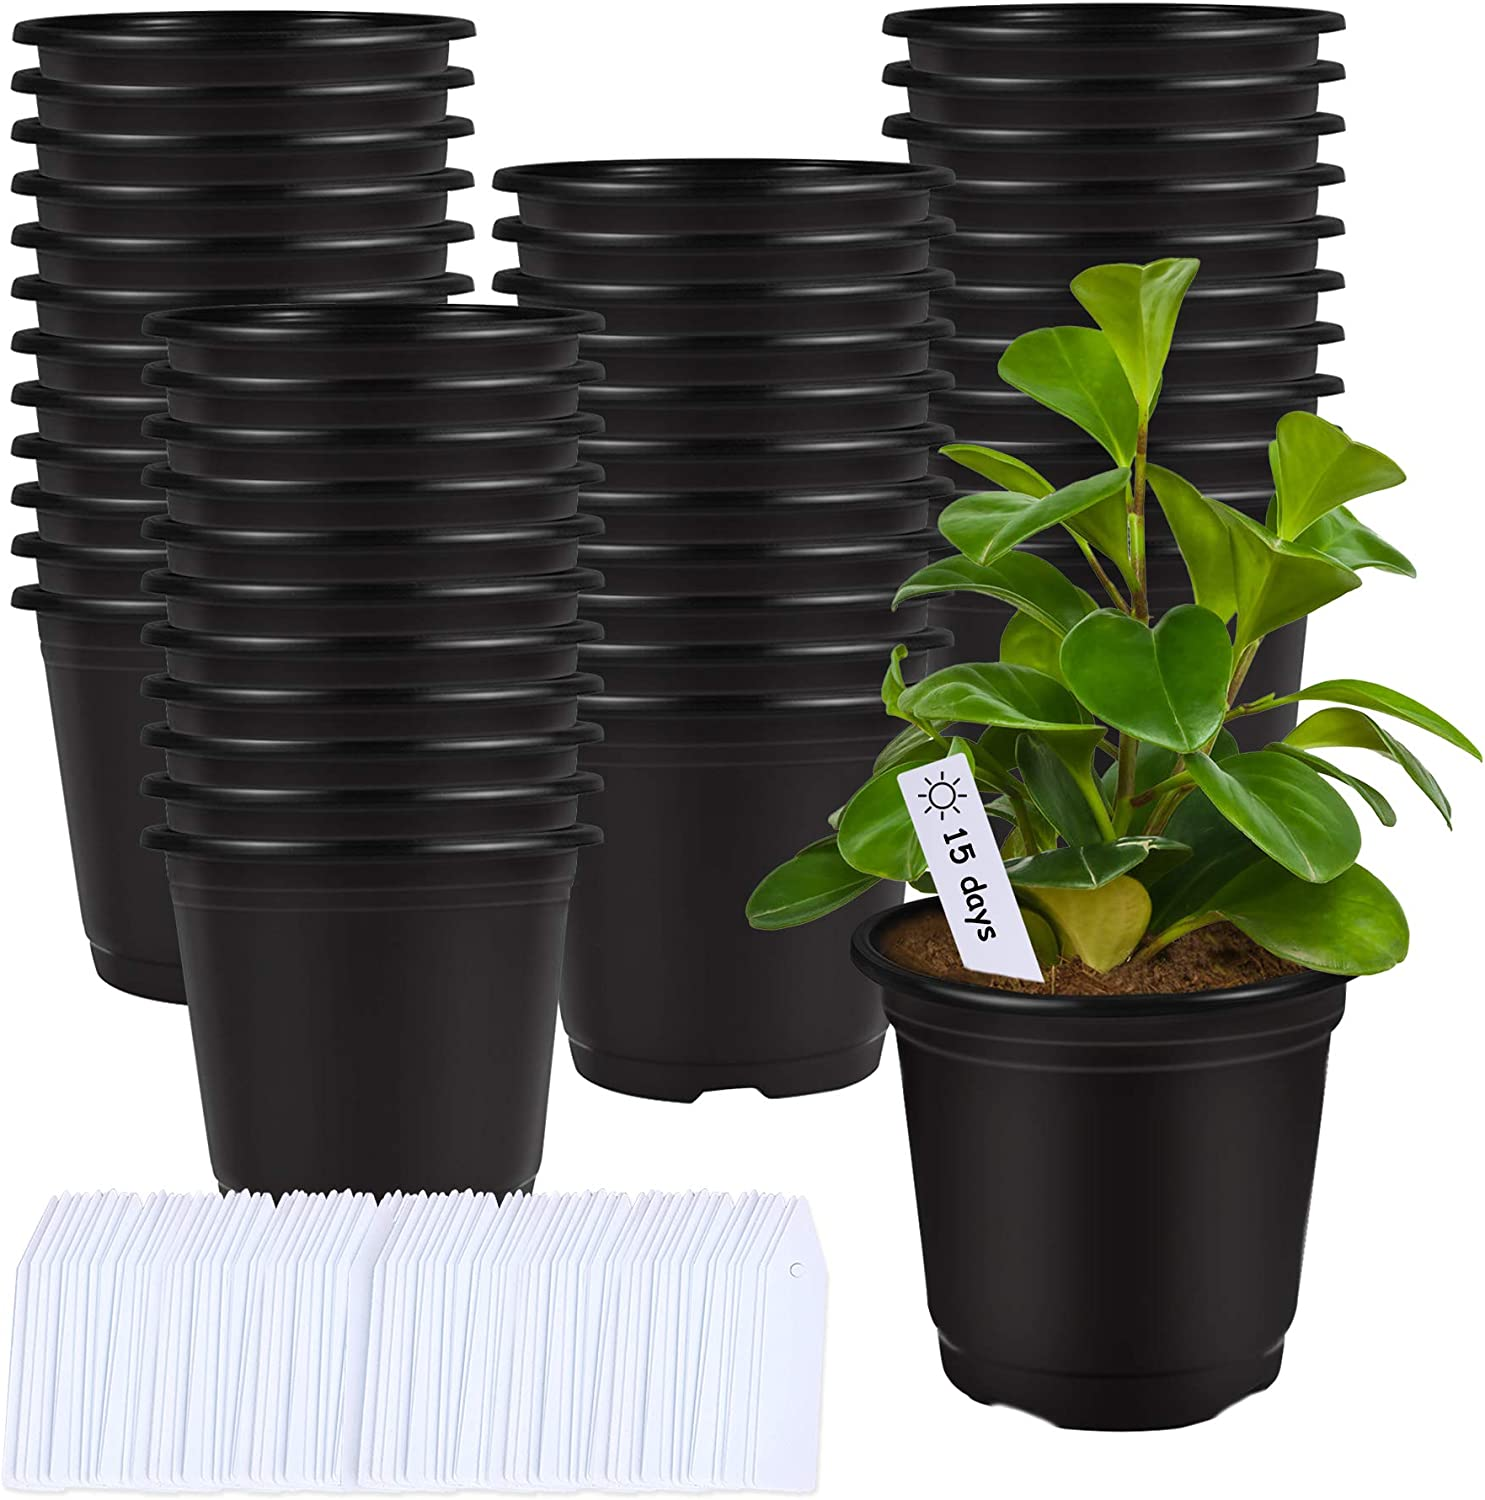 75 Pcs 0.5 Gallon Black Plastic Plant Nursery Pots 6 Inches Seed Starting Pots Containers with 100 Labels